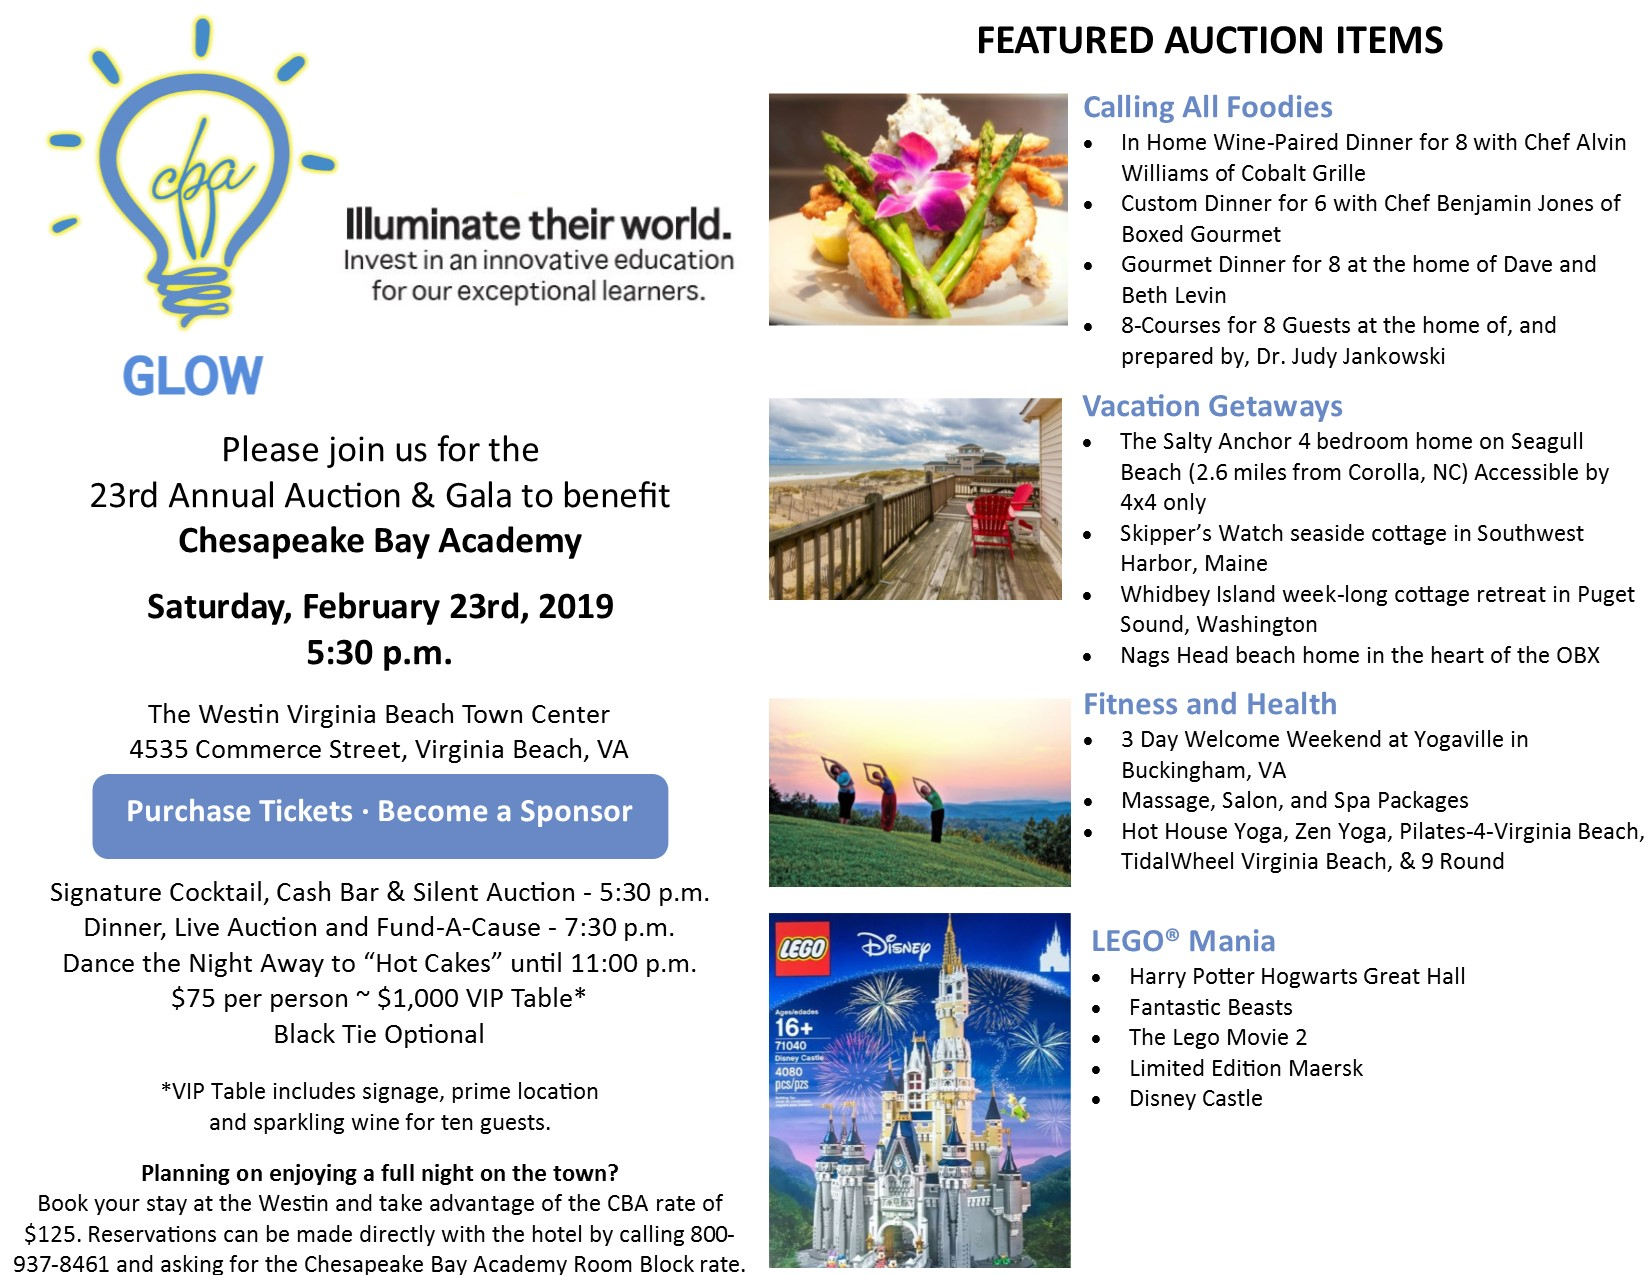 Featured Items at Chesapeake Bay Academy Annual Auction and Gala